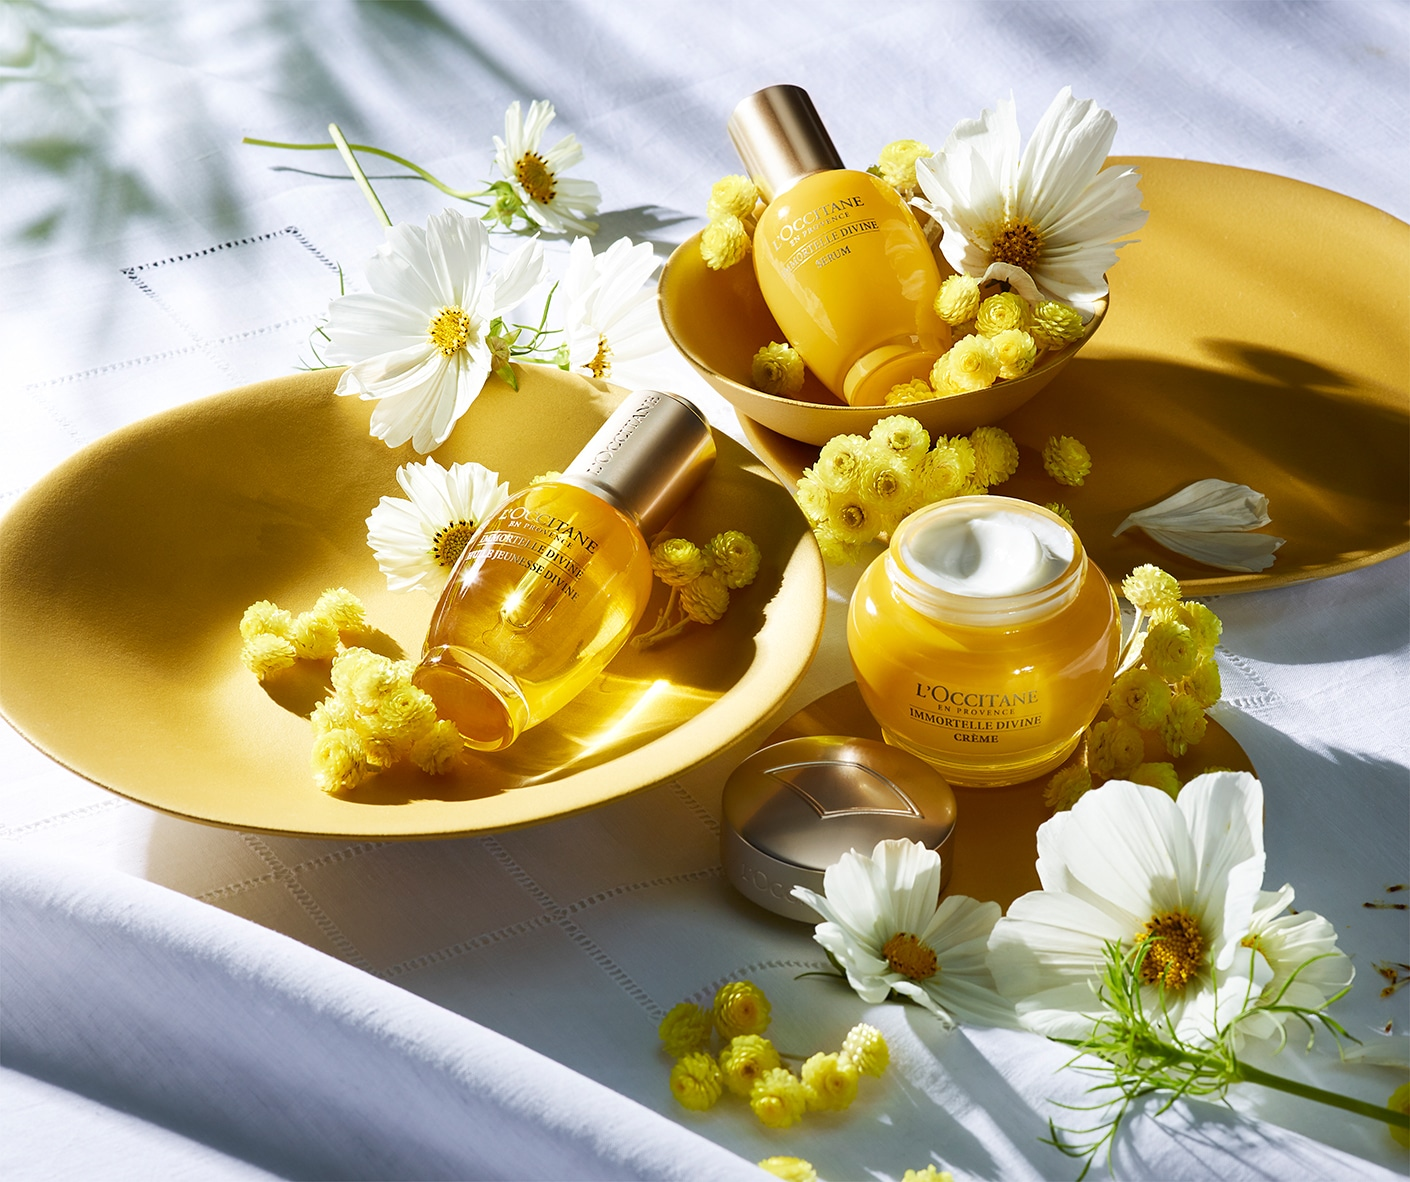 IMMORTELLE DIVINE COLLECTION - A unique anti-aging beauty routine - l'Occitane